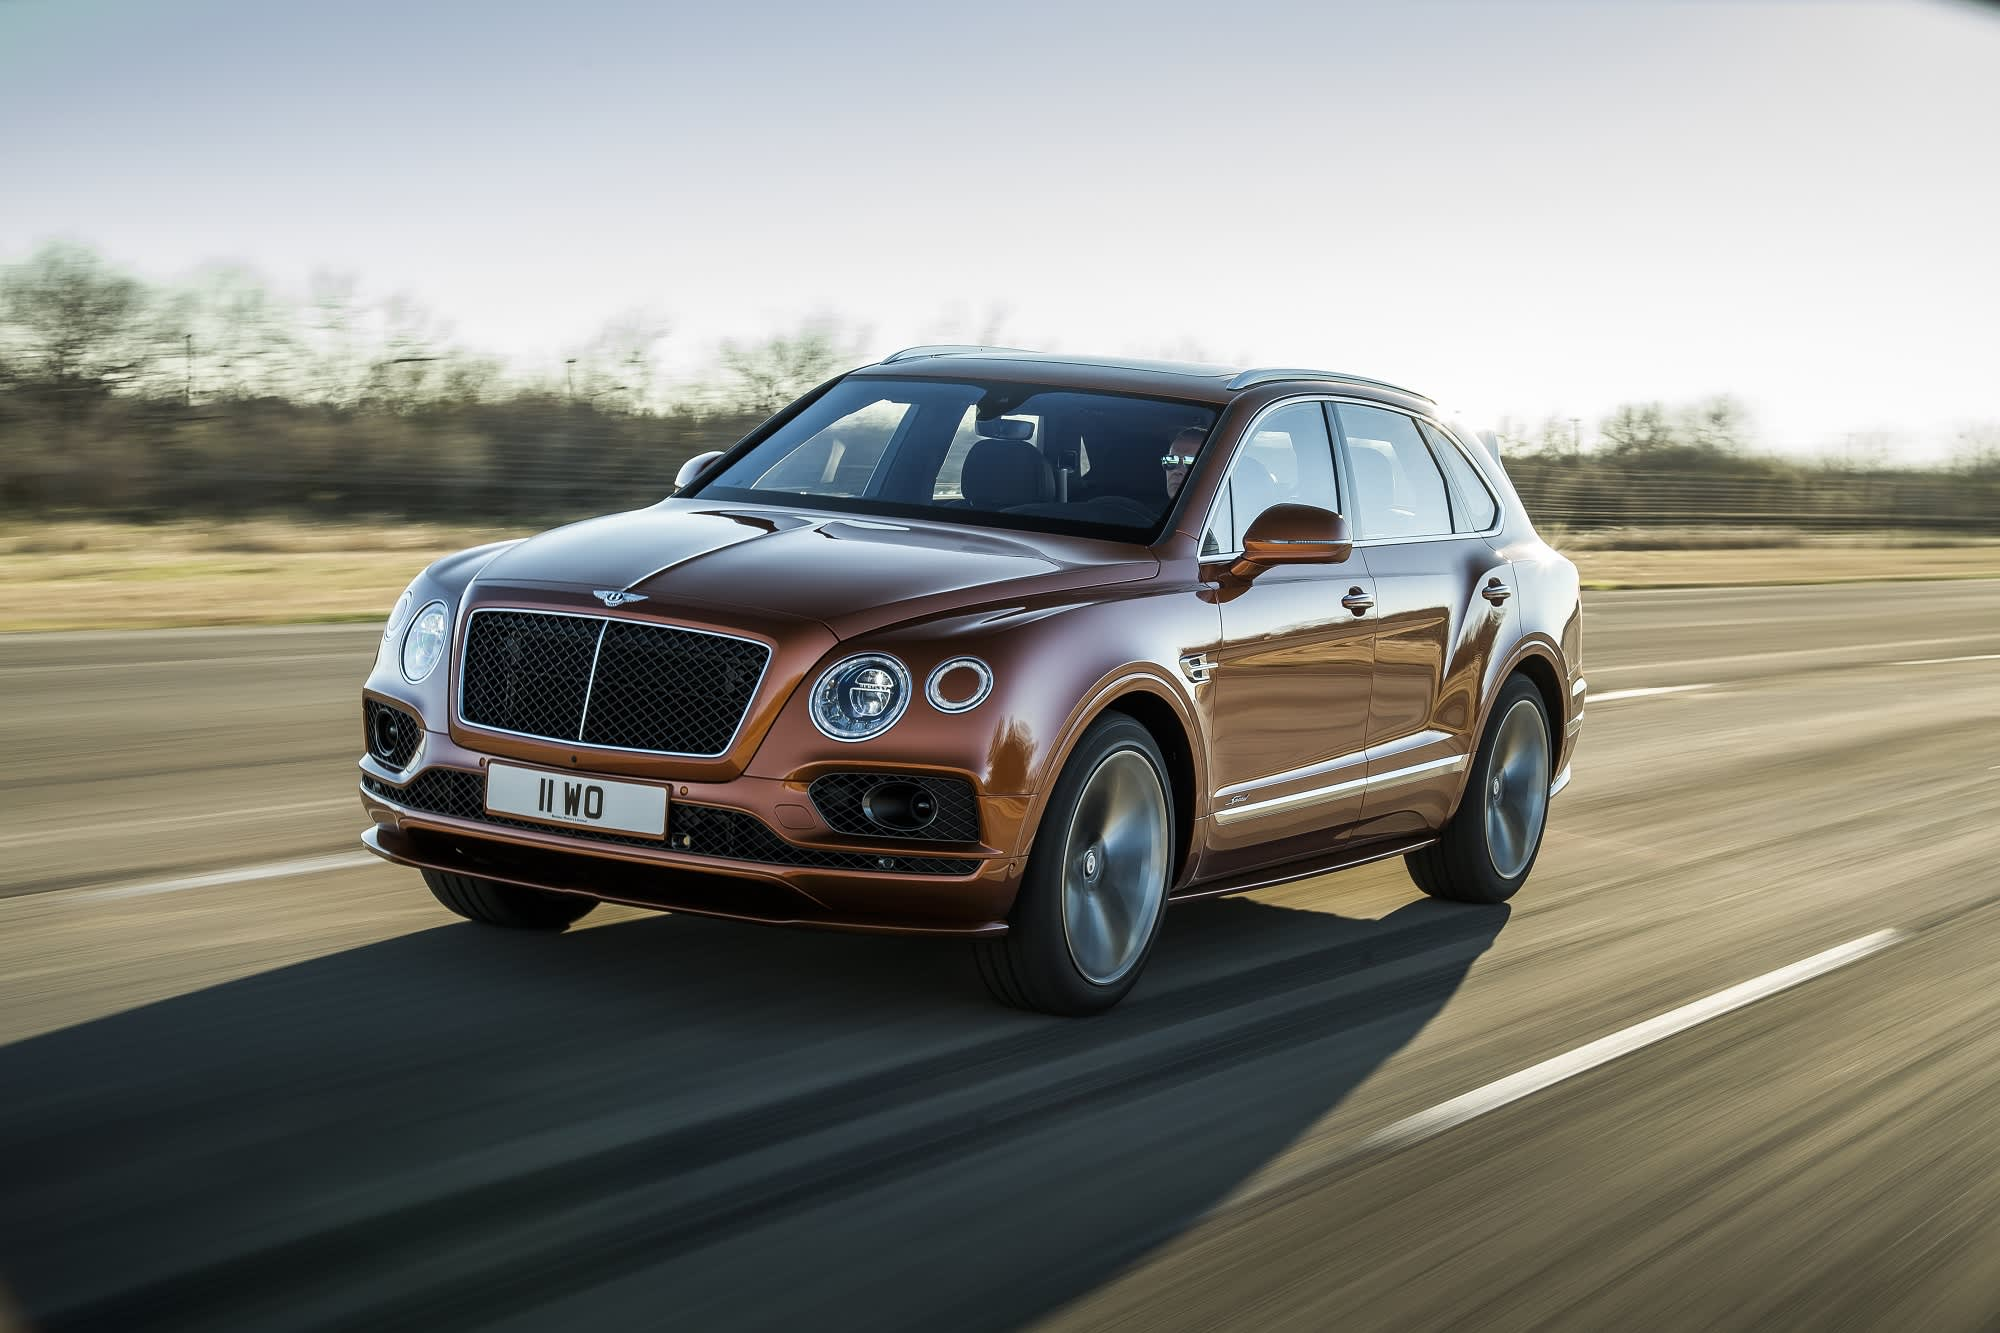 This Bentley is now the world\u0027s fastest SUV, beating out